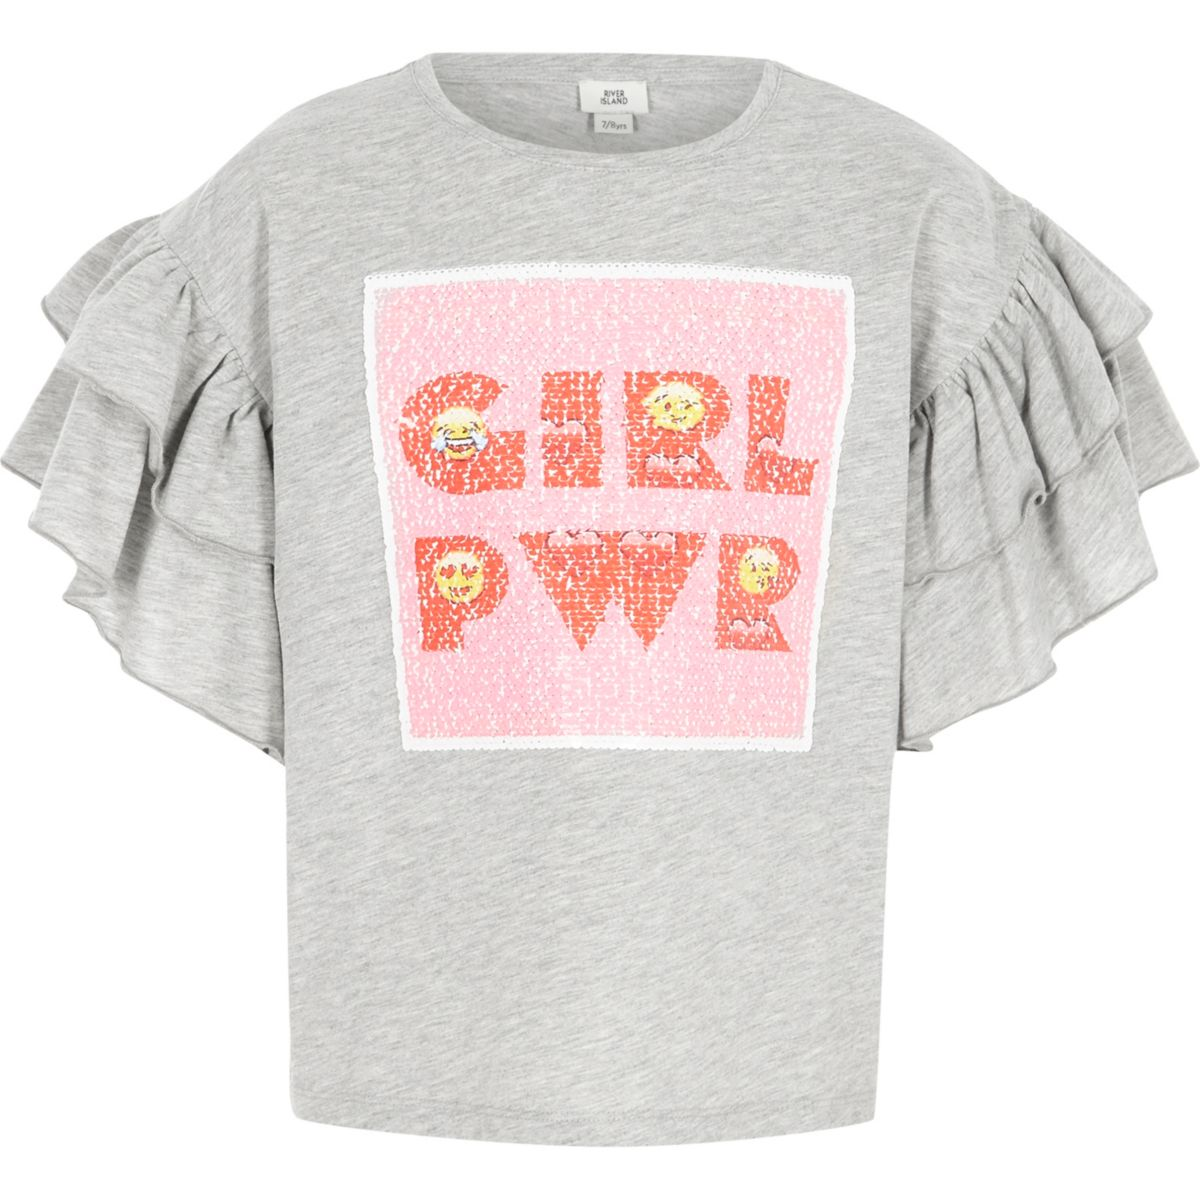 Girls grey marl 39 girl power 39 sequin t shirt t shirts for Girls sequin t shirt